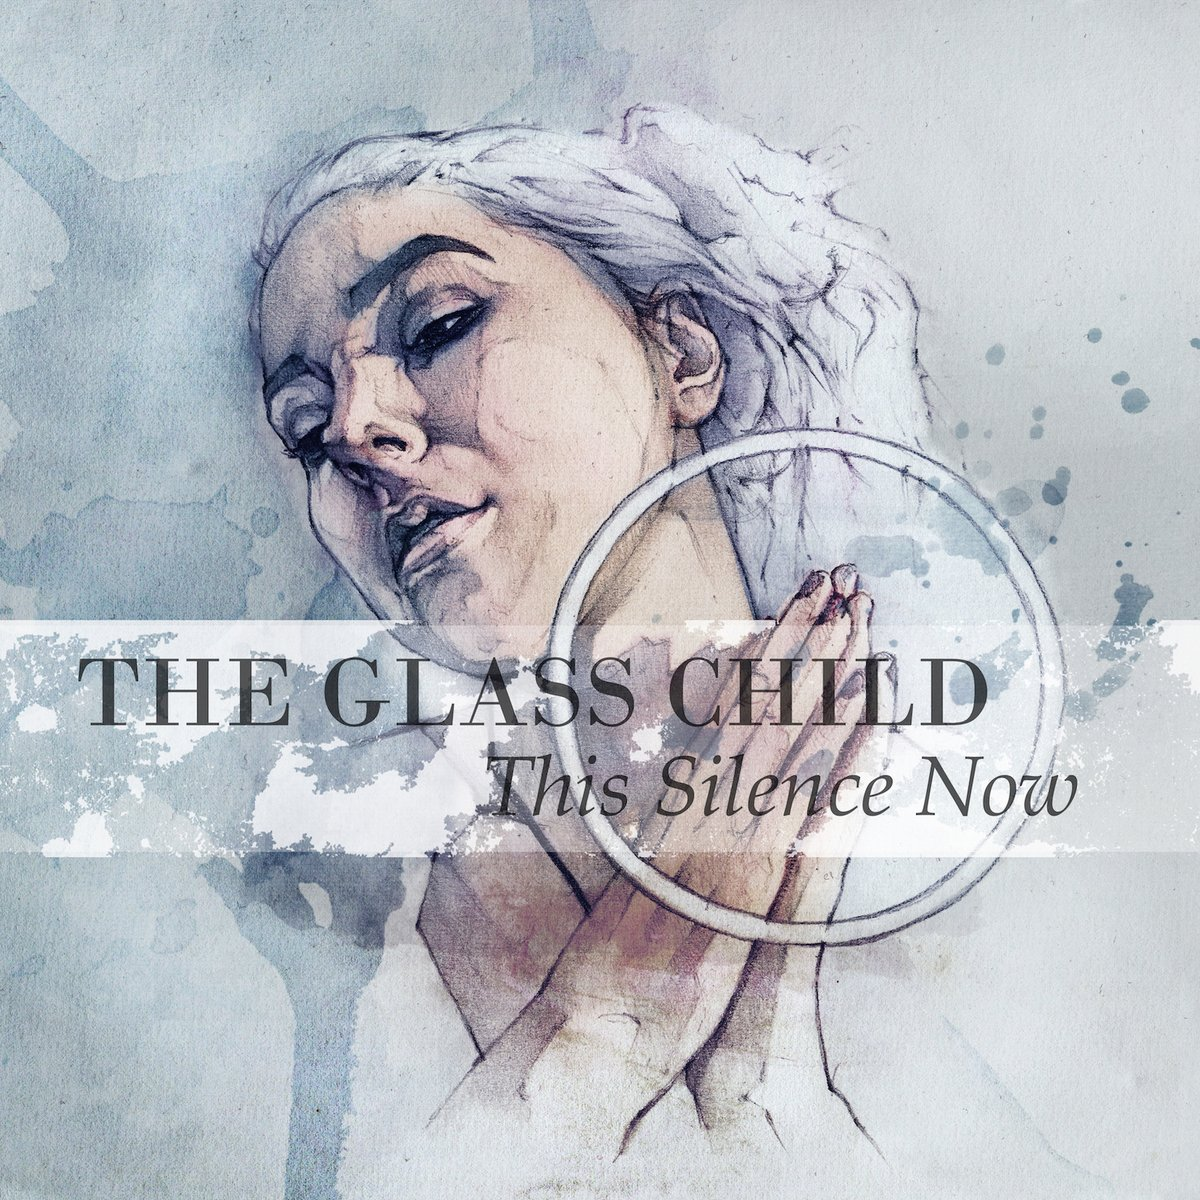 The Glass Child - This Silence Now